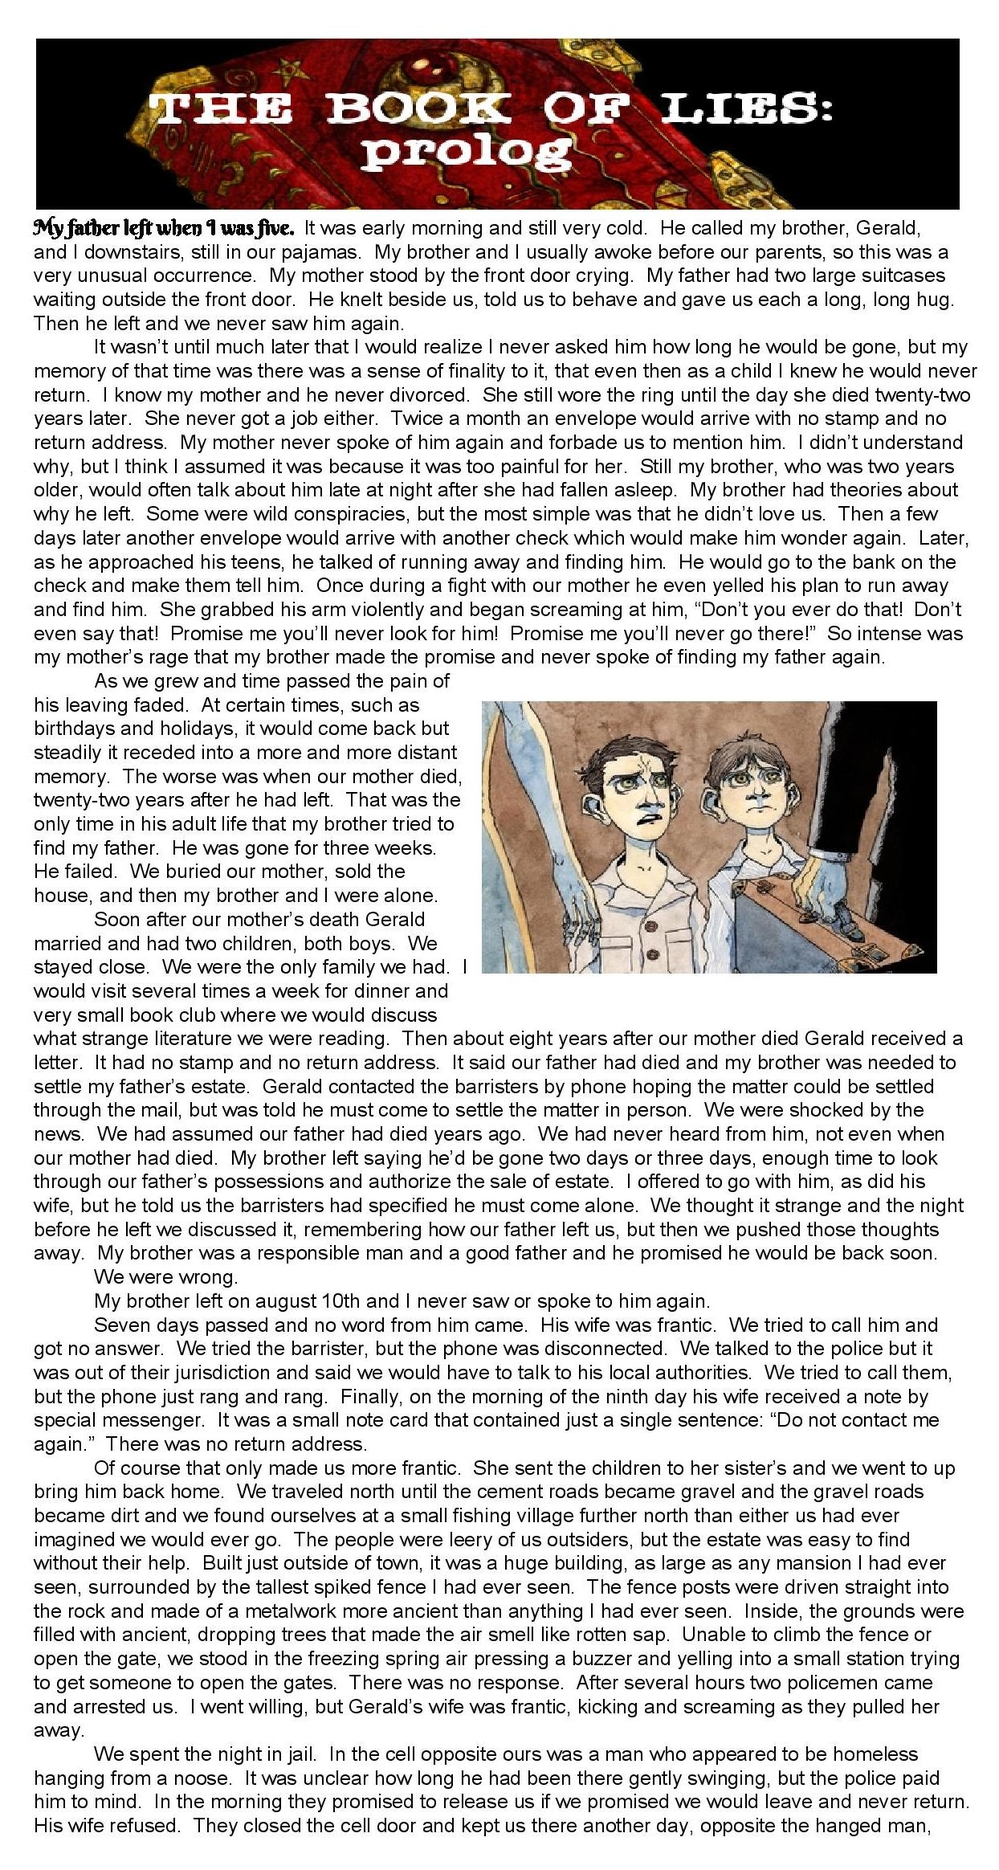 Chapter 1 - The Library - page 1